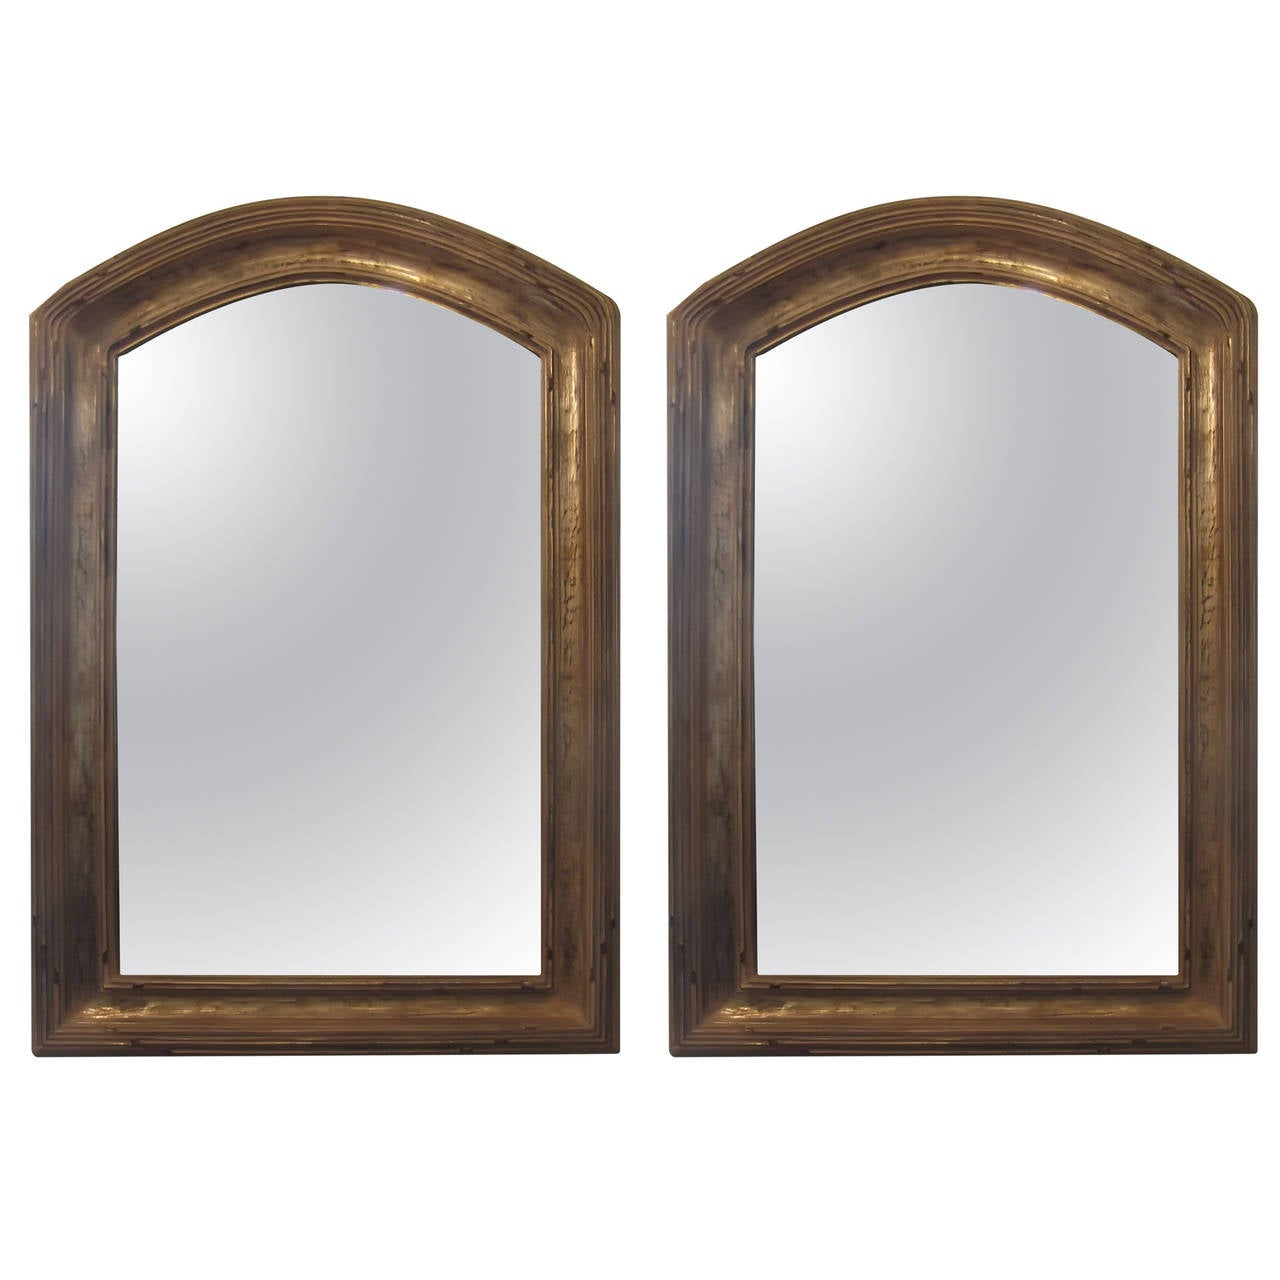 Pair of giltwood arched top mirrors 1